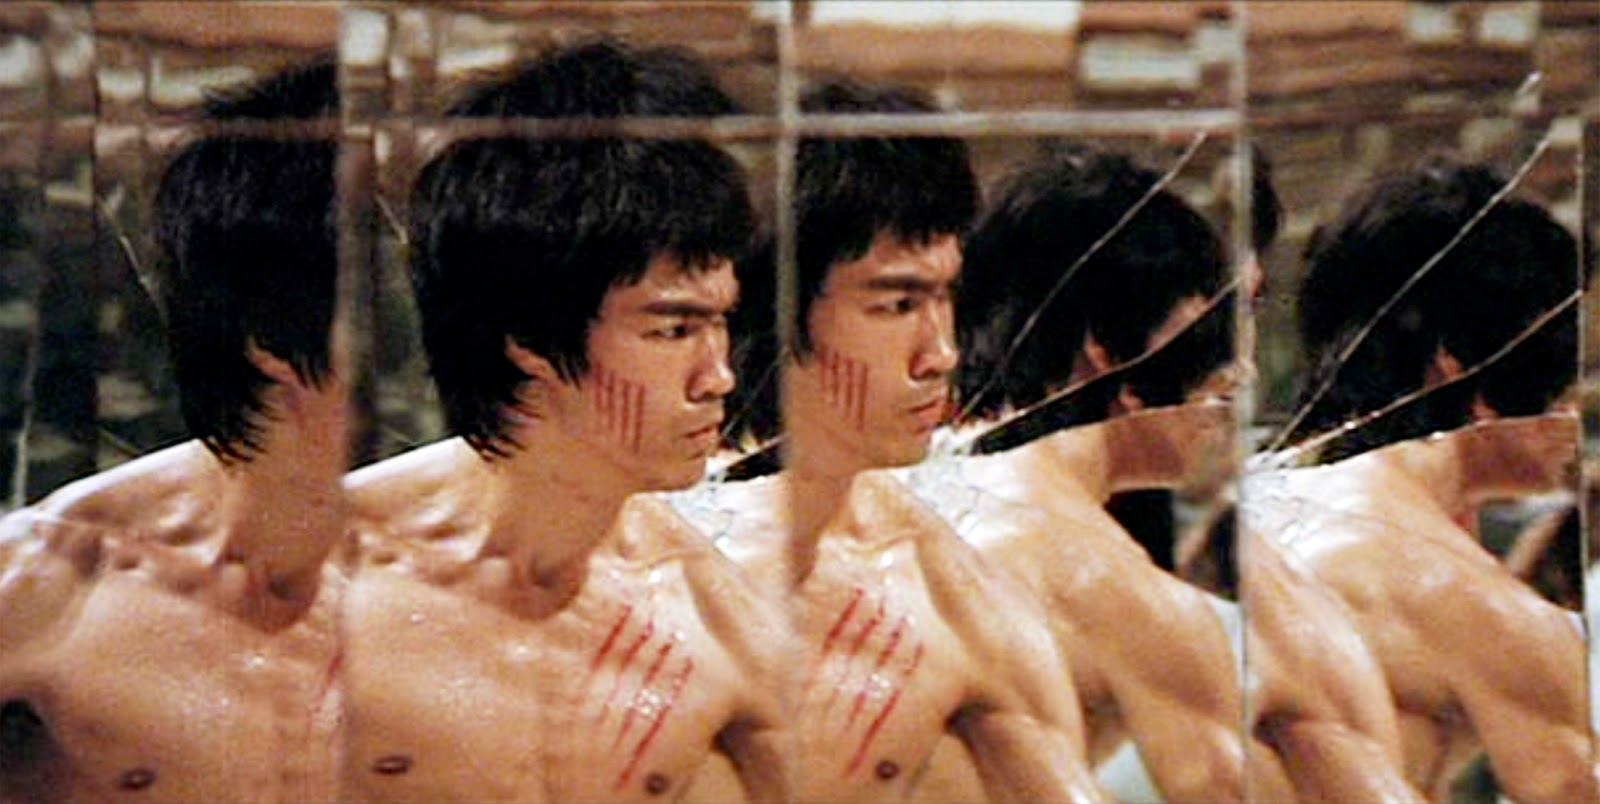 Musicians to perform in Enter The Dragon-style hall of mirrors